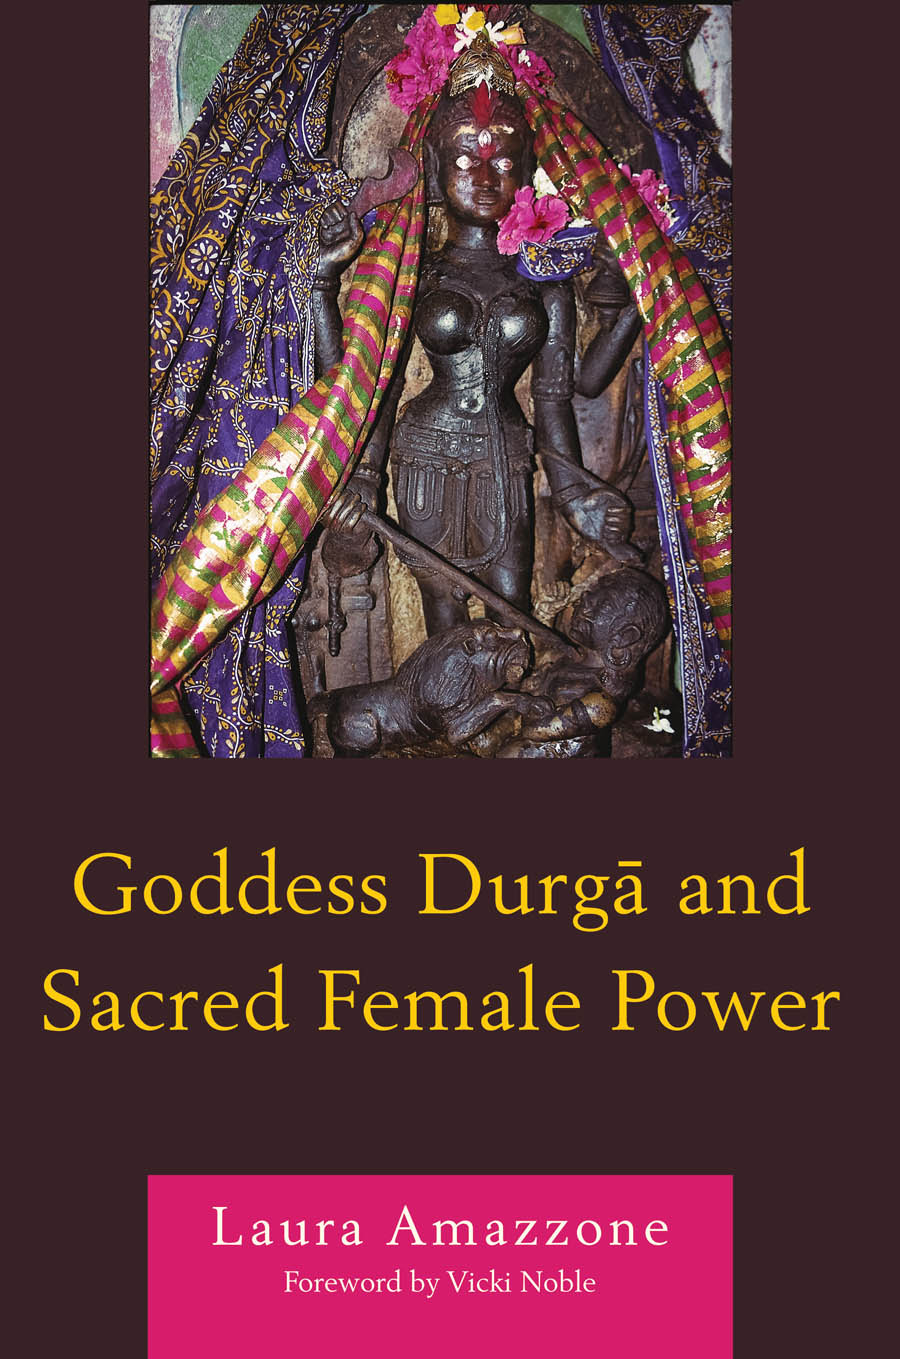 Goddess Durga and Sacred Female Power